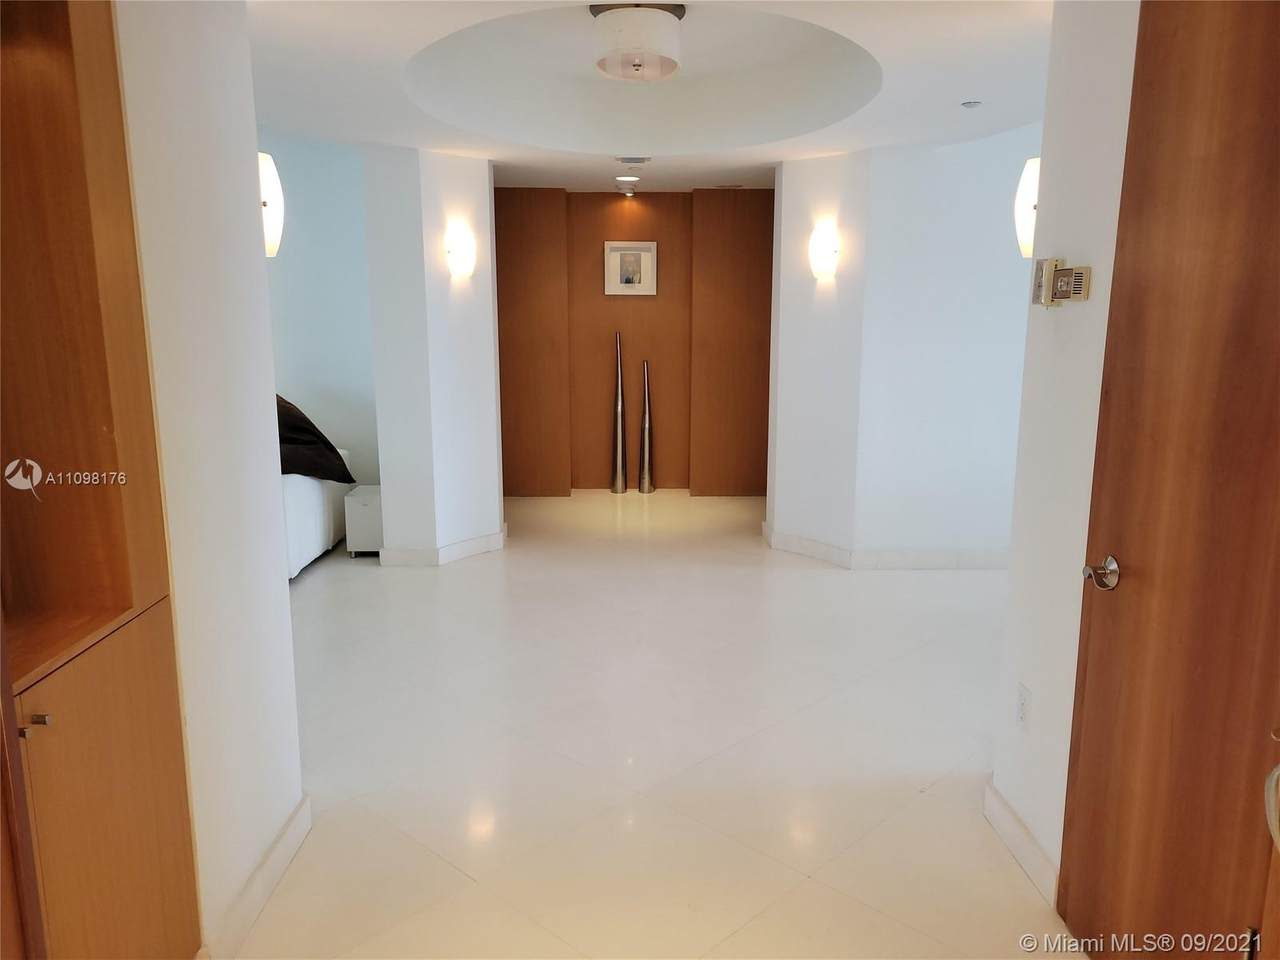 19111 Collins Ave - Photo 1